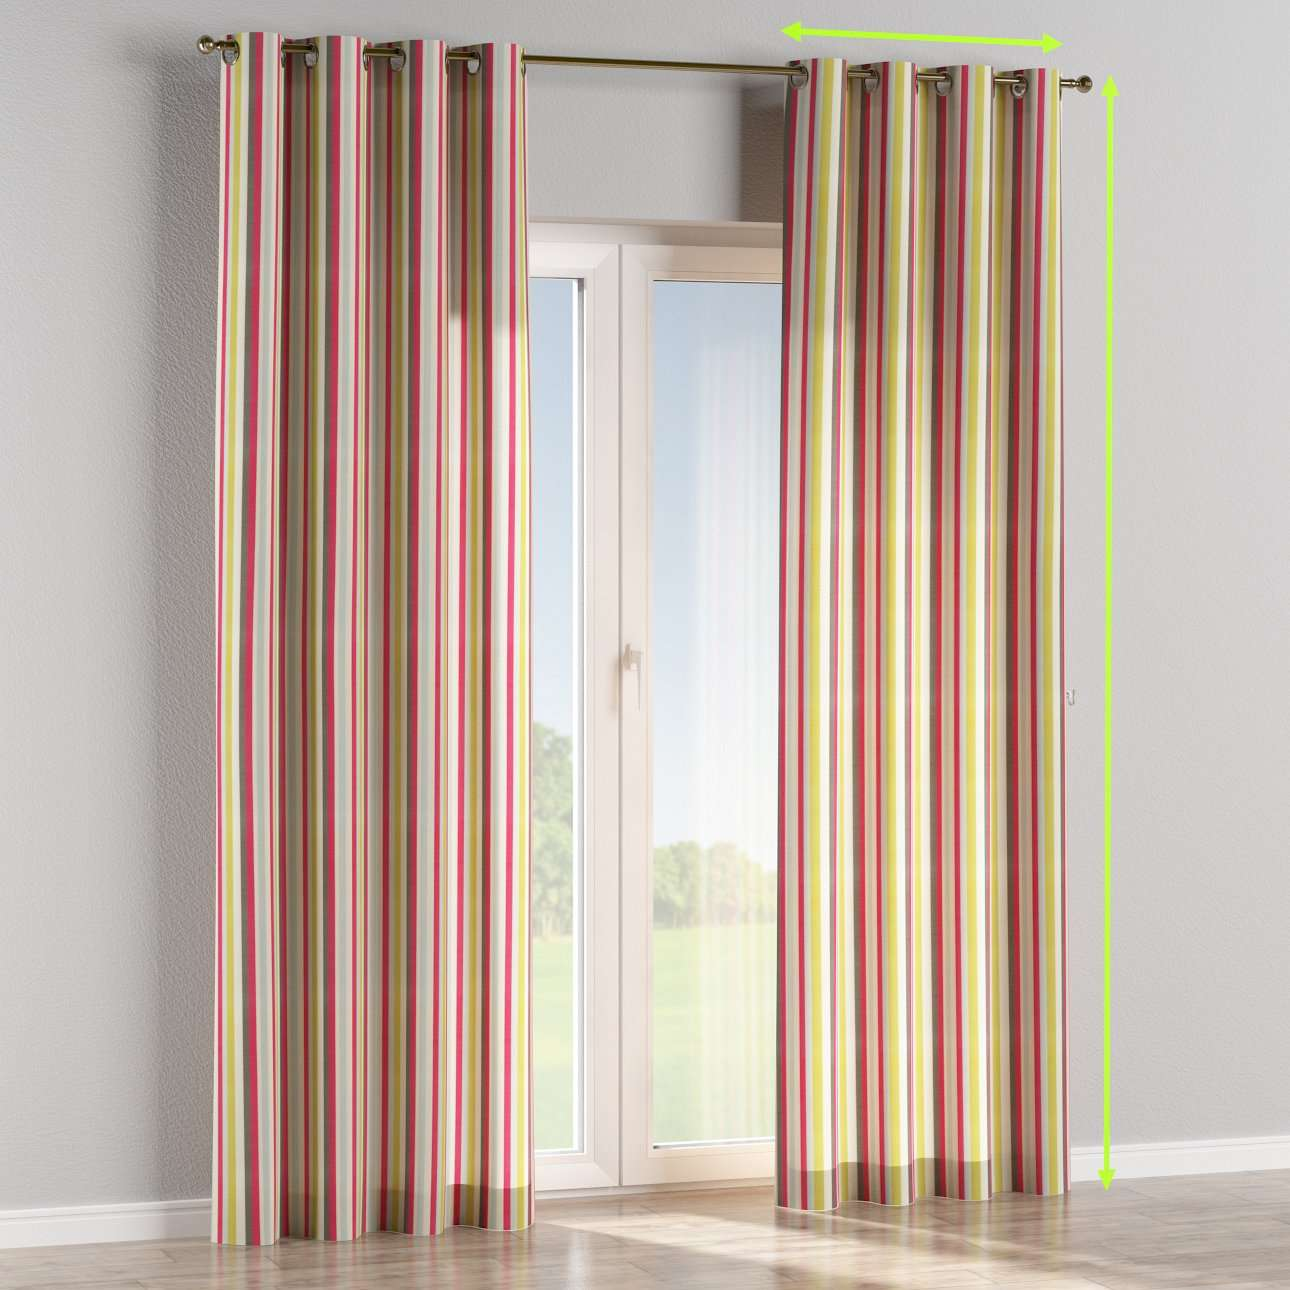 Eyelet lined curtains in collection Norge, fabric: 140-81